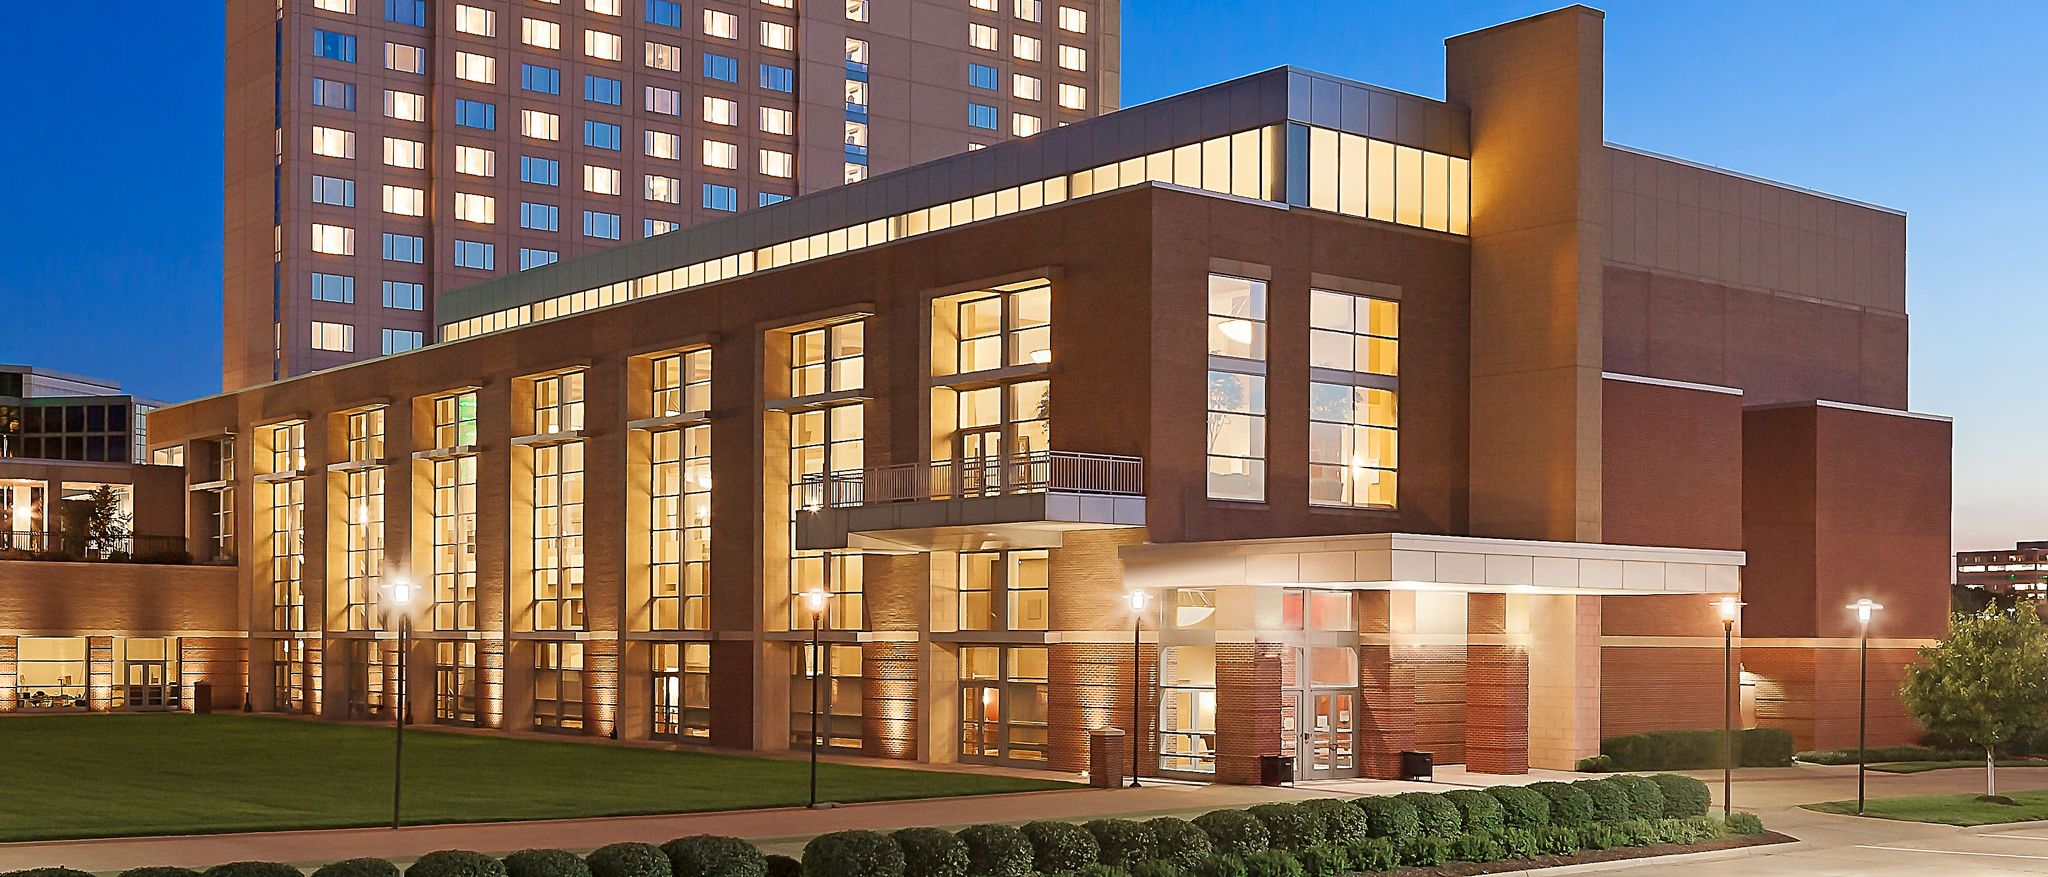 green kansas city hotels eco friendly kansas city hotels sheraton overland park hotel exterior